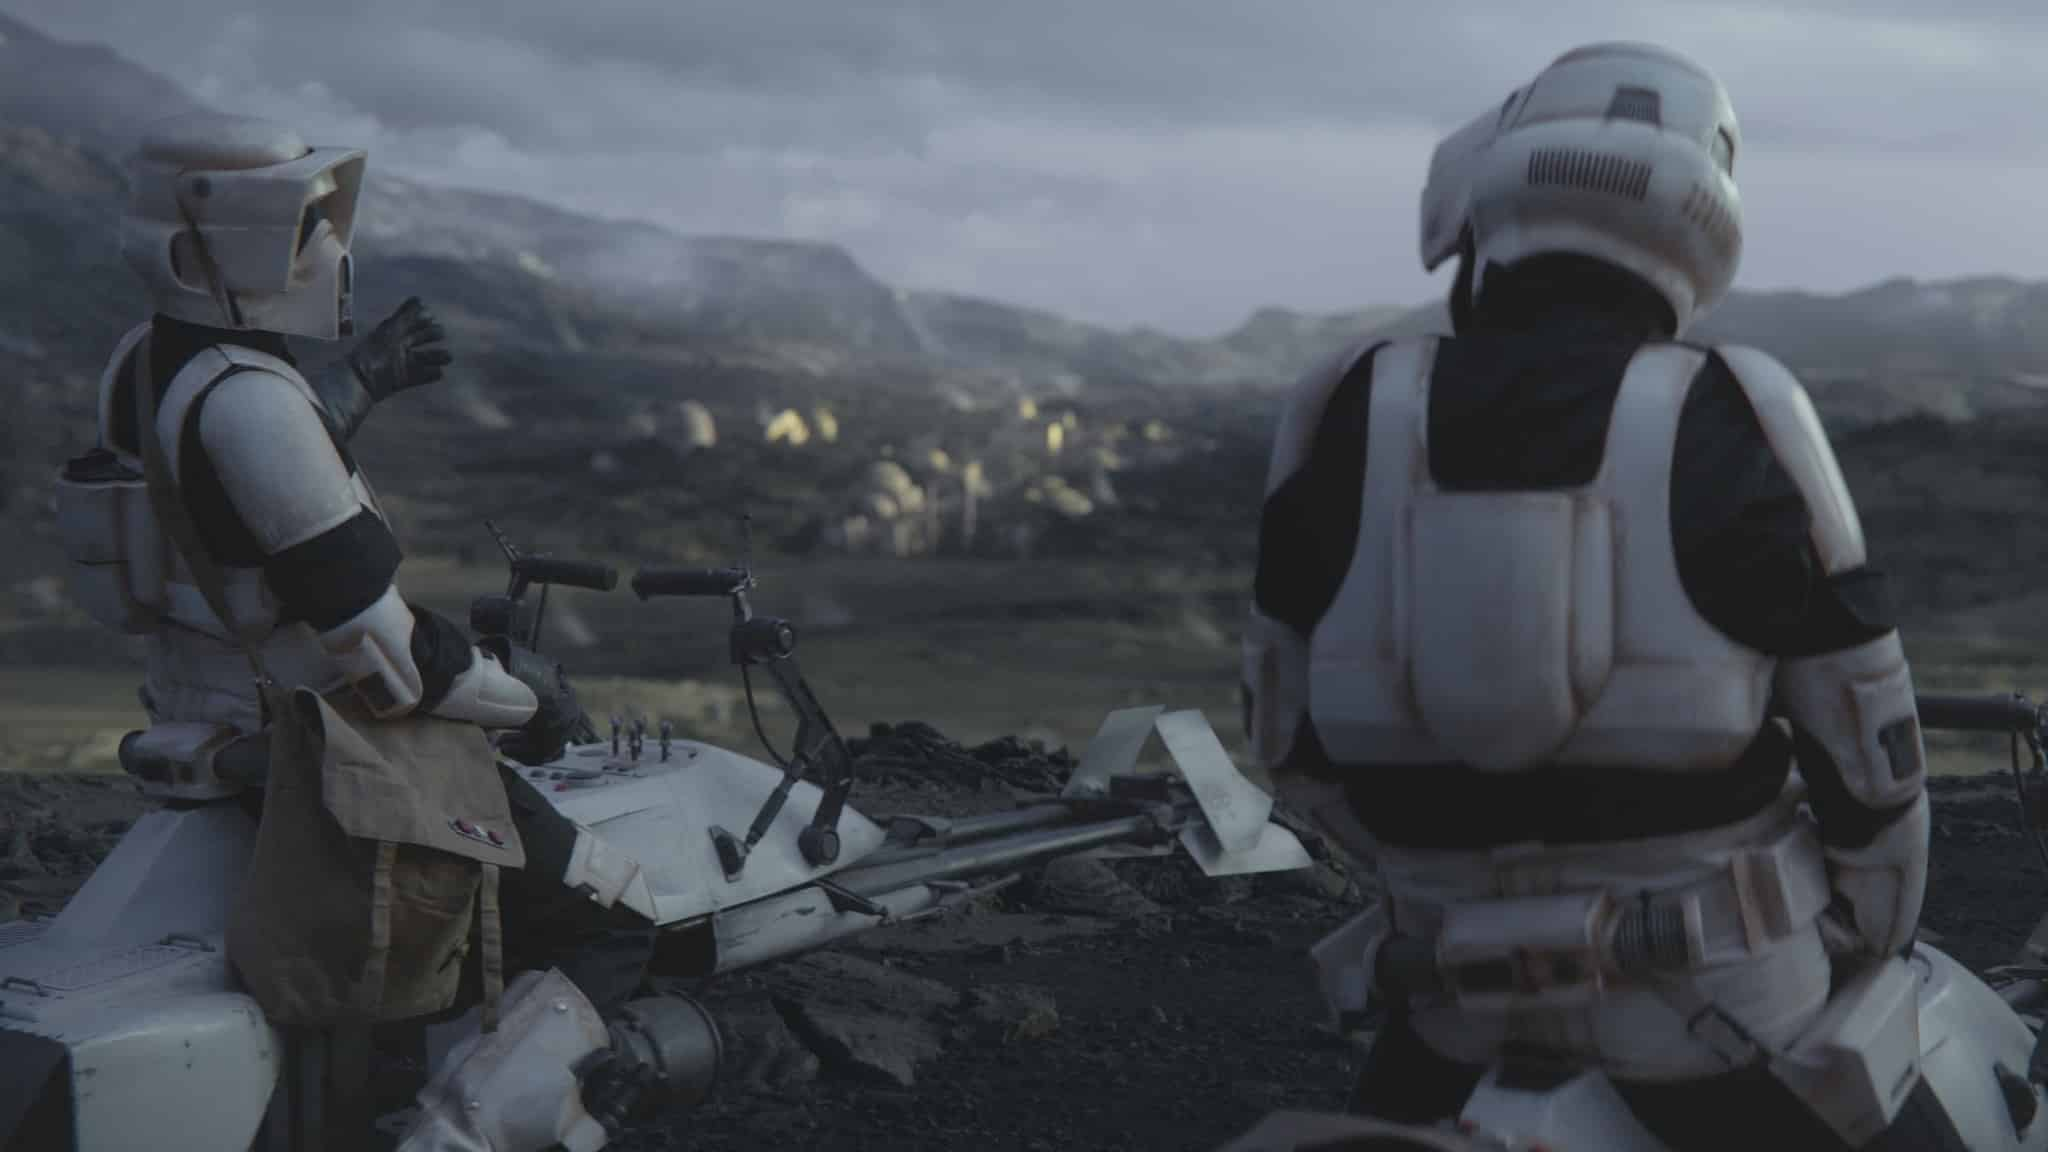 Scout troopers wary the mandalorian